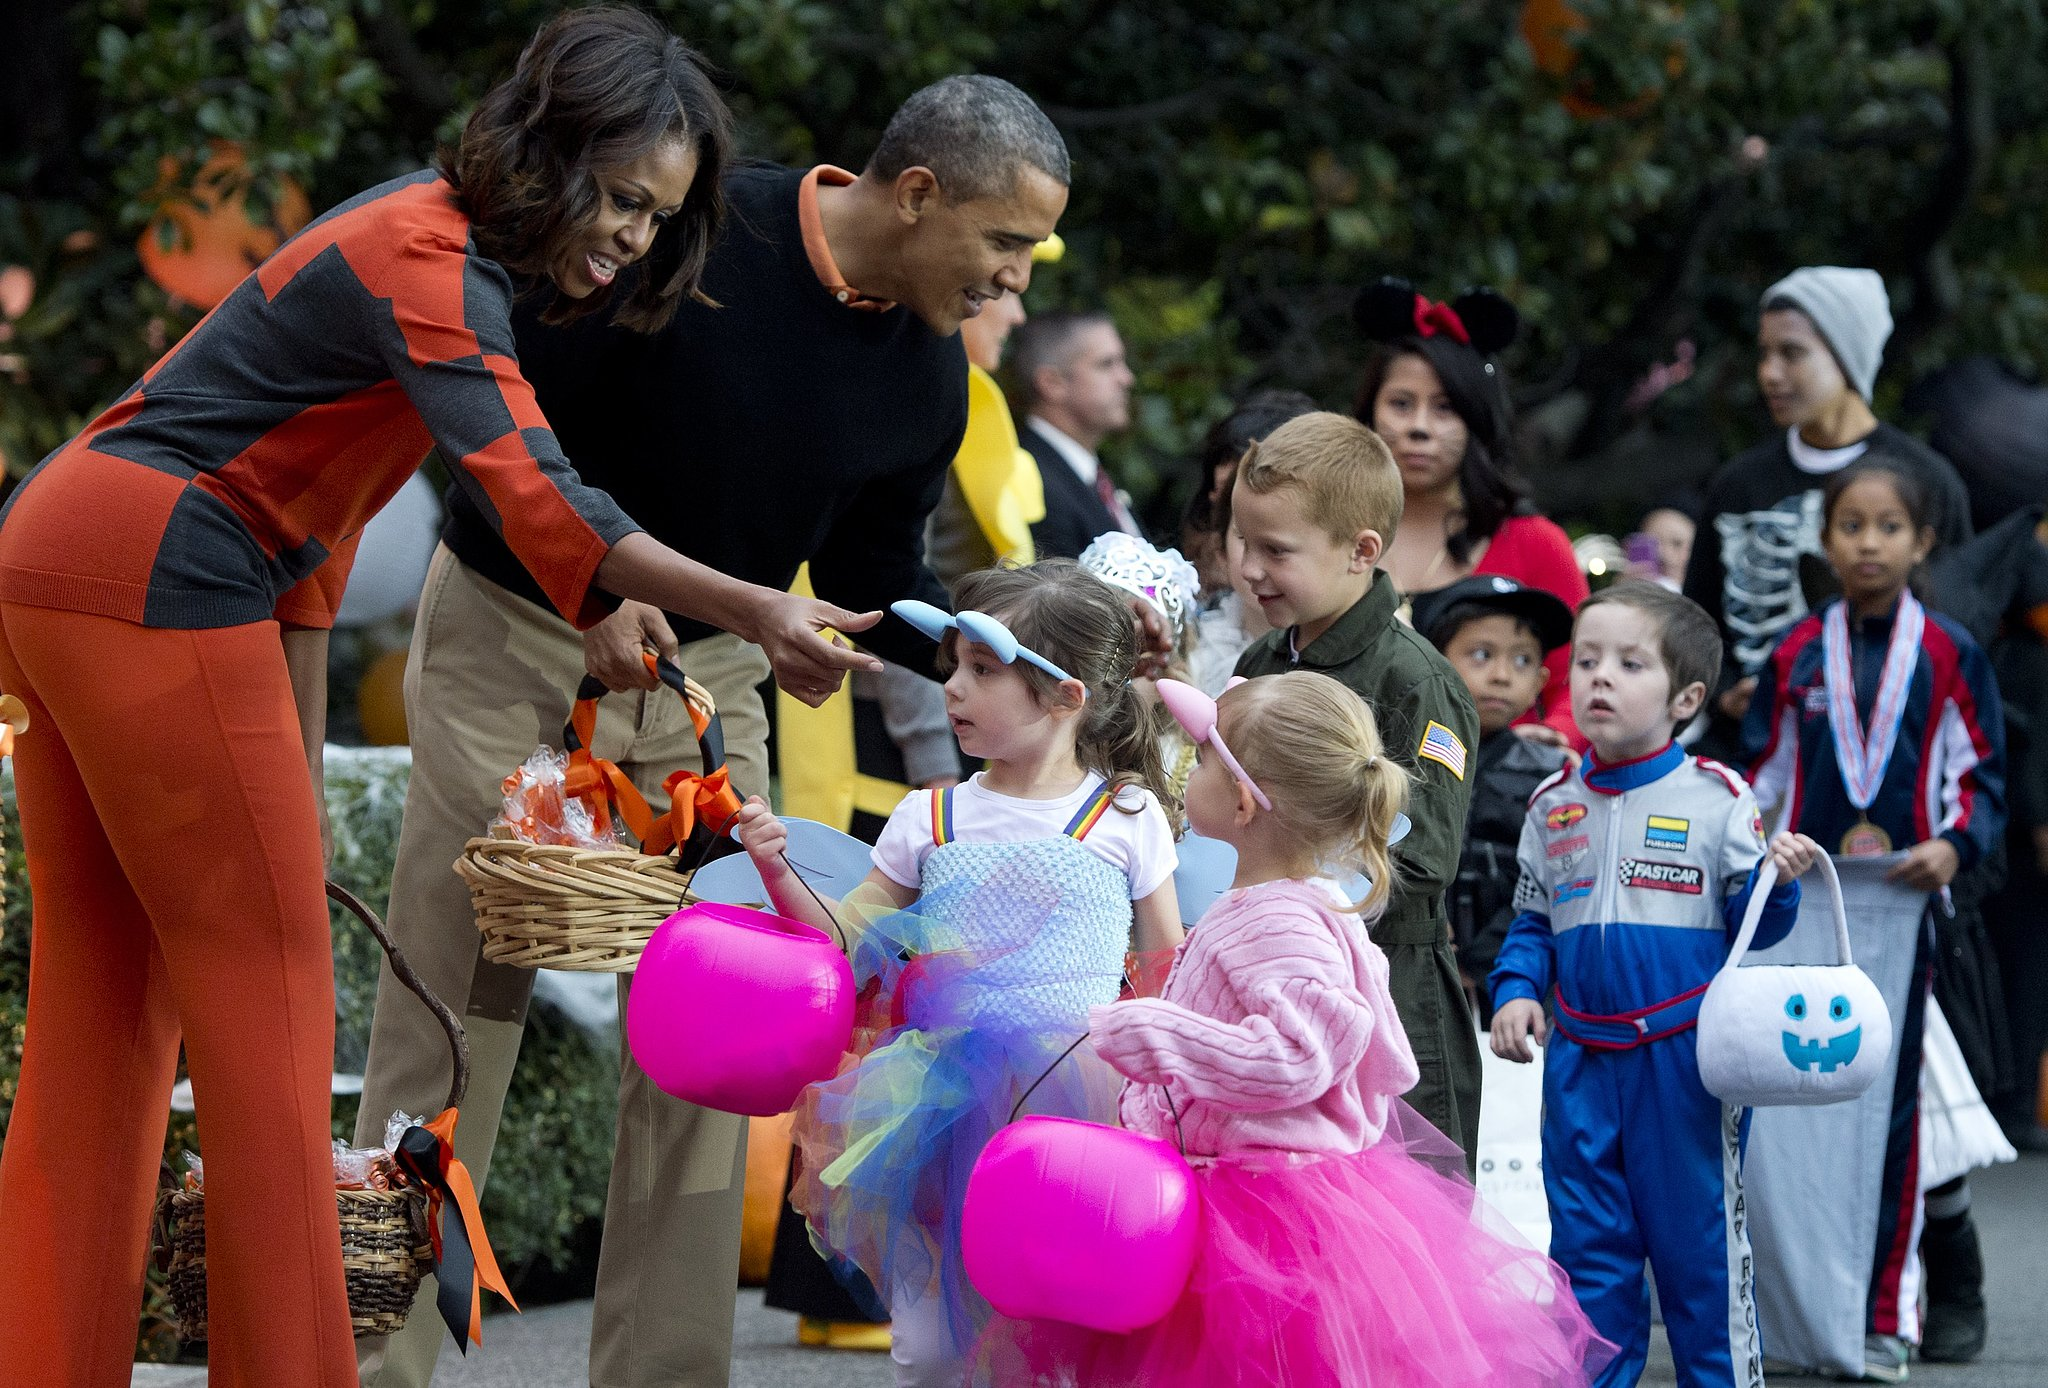 The president and first lady personally handed out candy.